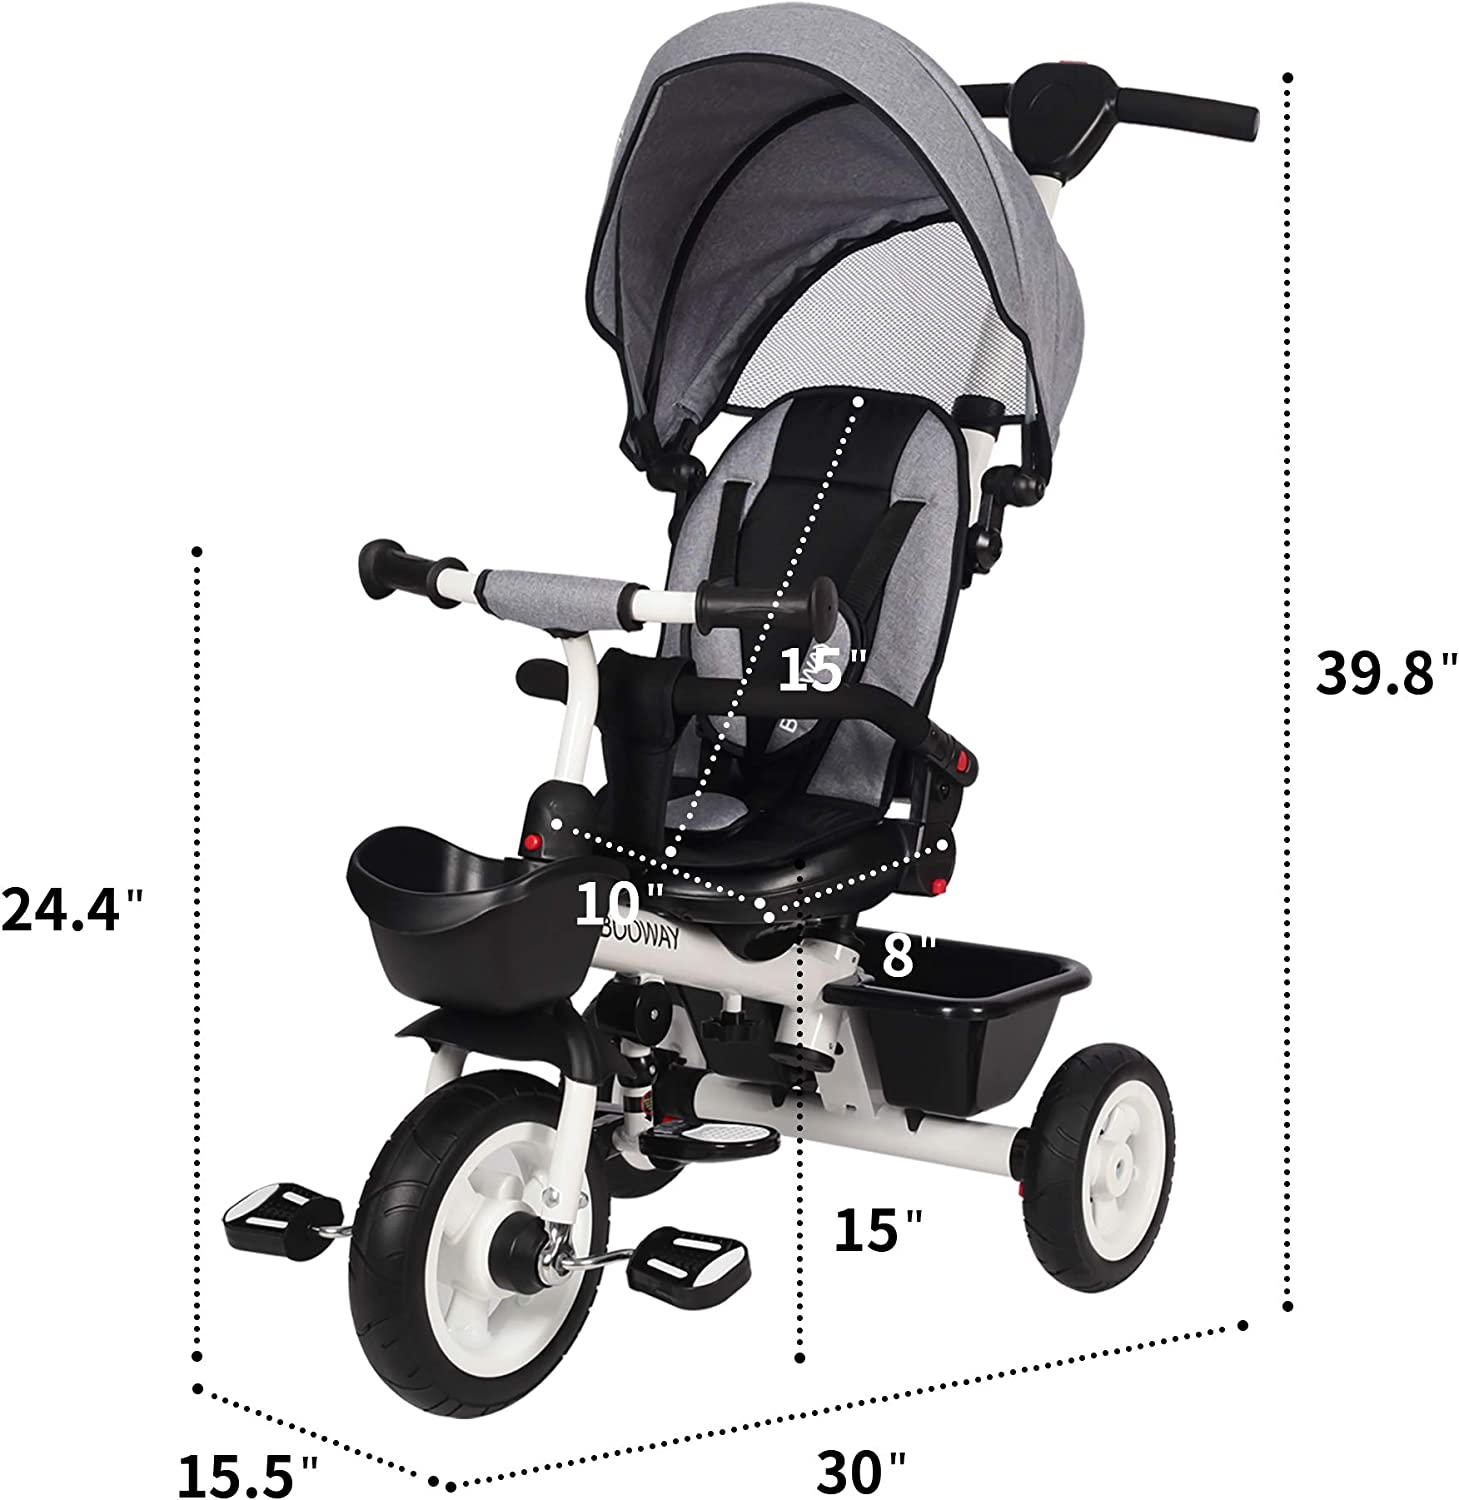 6-in-1 Kids Stroller Tricycle with Adjustable Push Handle Removable Canopy Safety Harness for 6 Months BOOWAY Baby Tricycle 5 Year Old